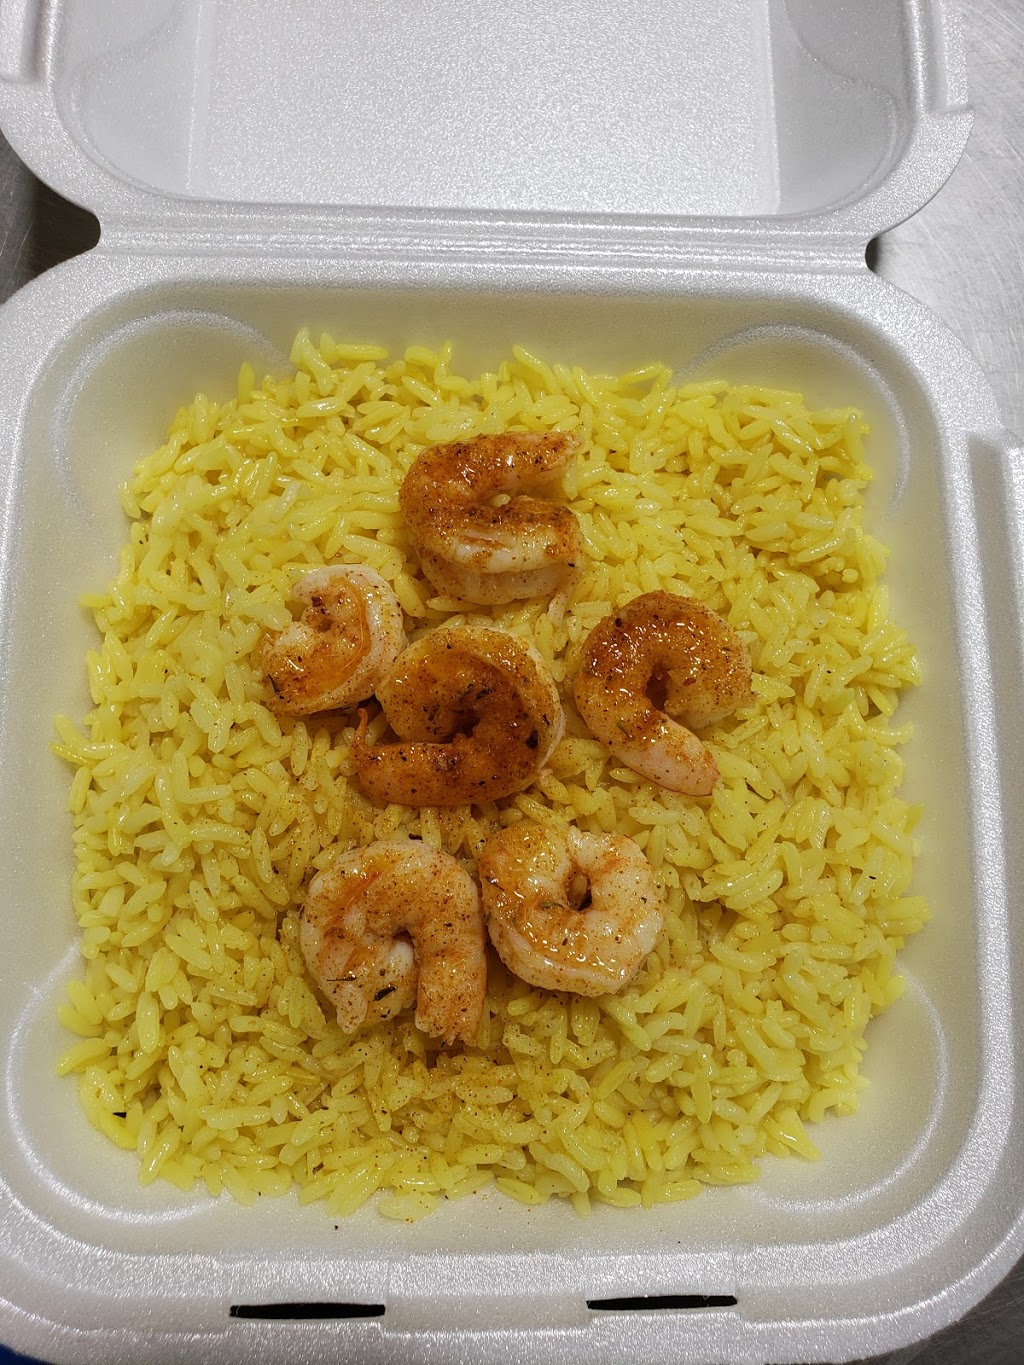 Best Seafood Place - restaurant  | Photo 8 of 10 | Address: 2122 W Colonial Dr, Orlando, FL 32804, USA | Phone: (407) 425-9292